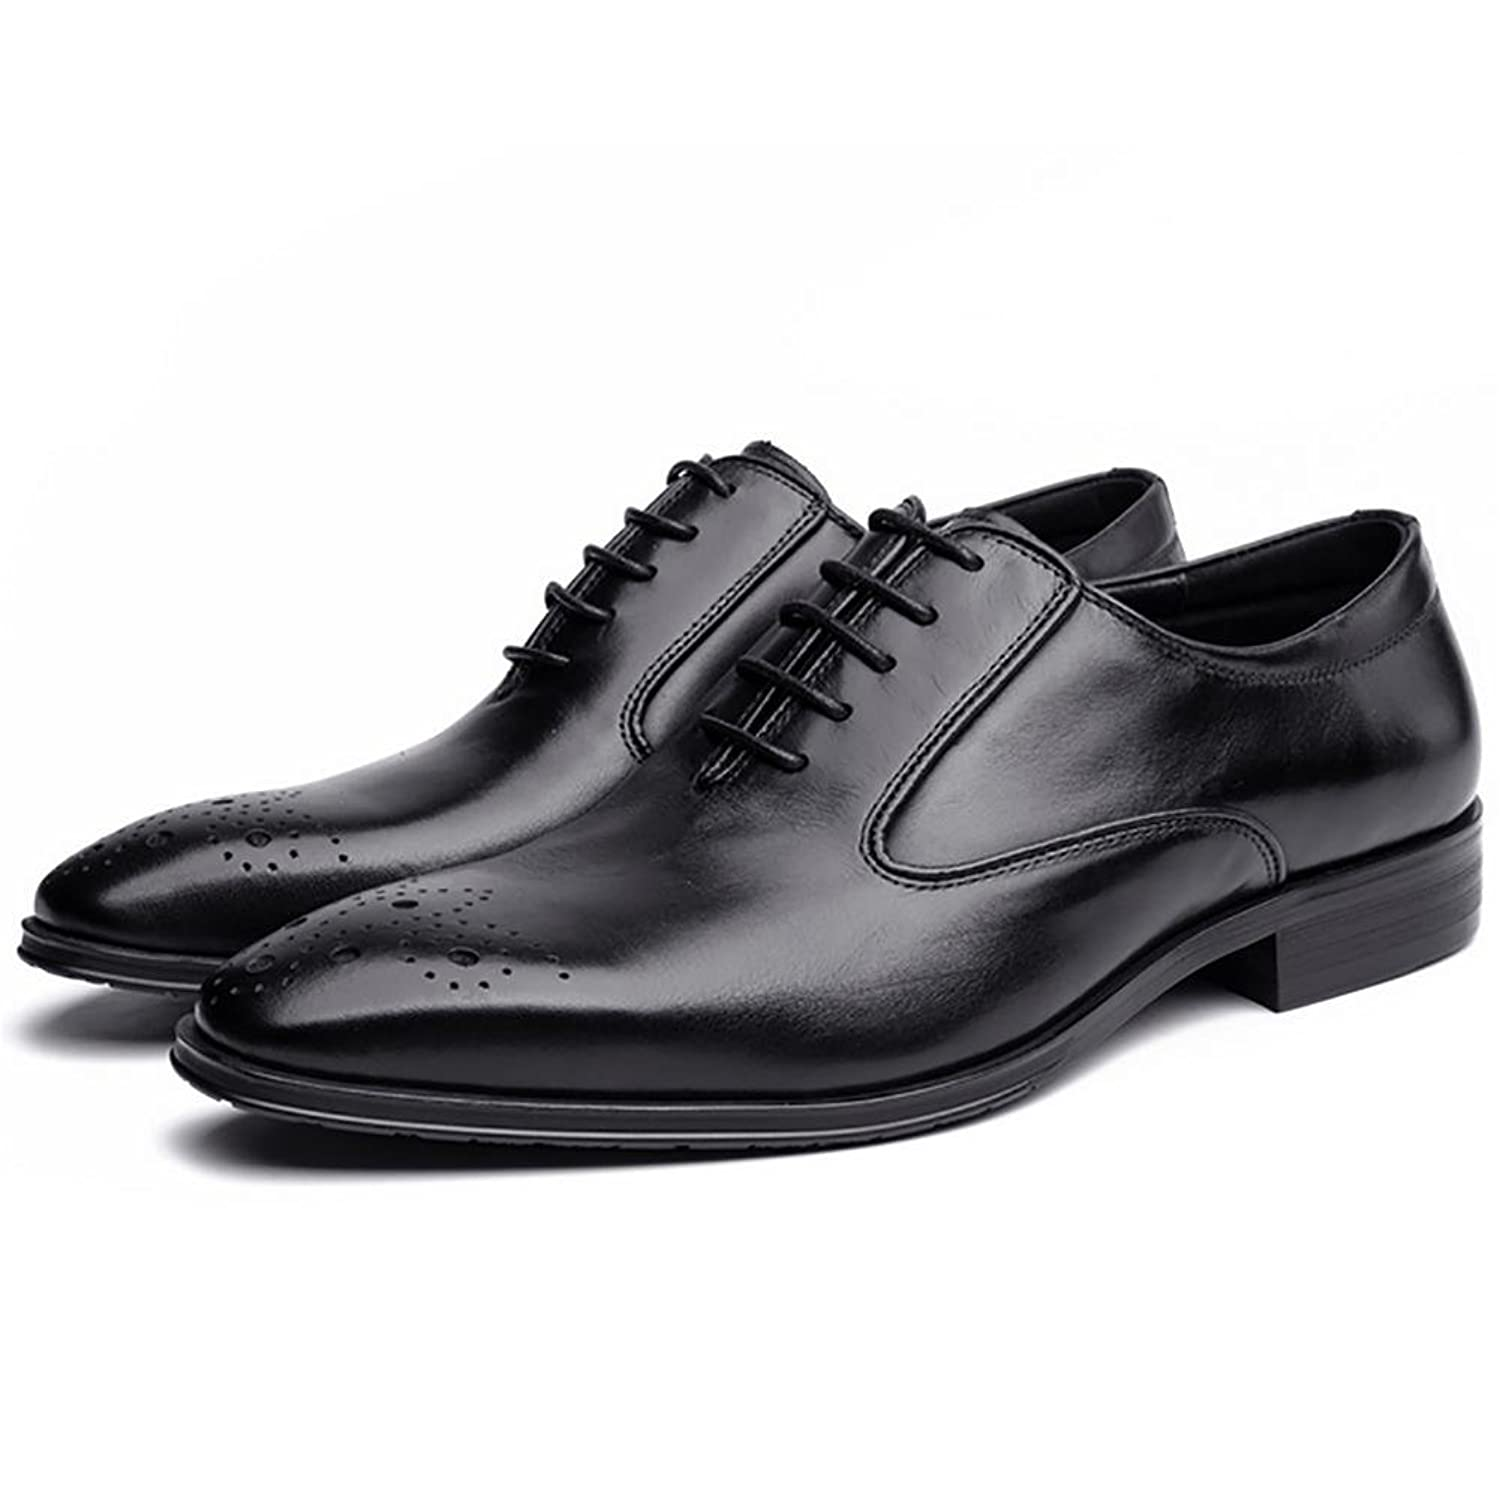 SYYAN Men's Leather Breathable Pointed Lace Hand-made The Pack Wingtip Oxford Business